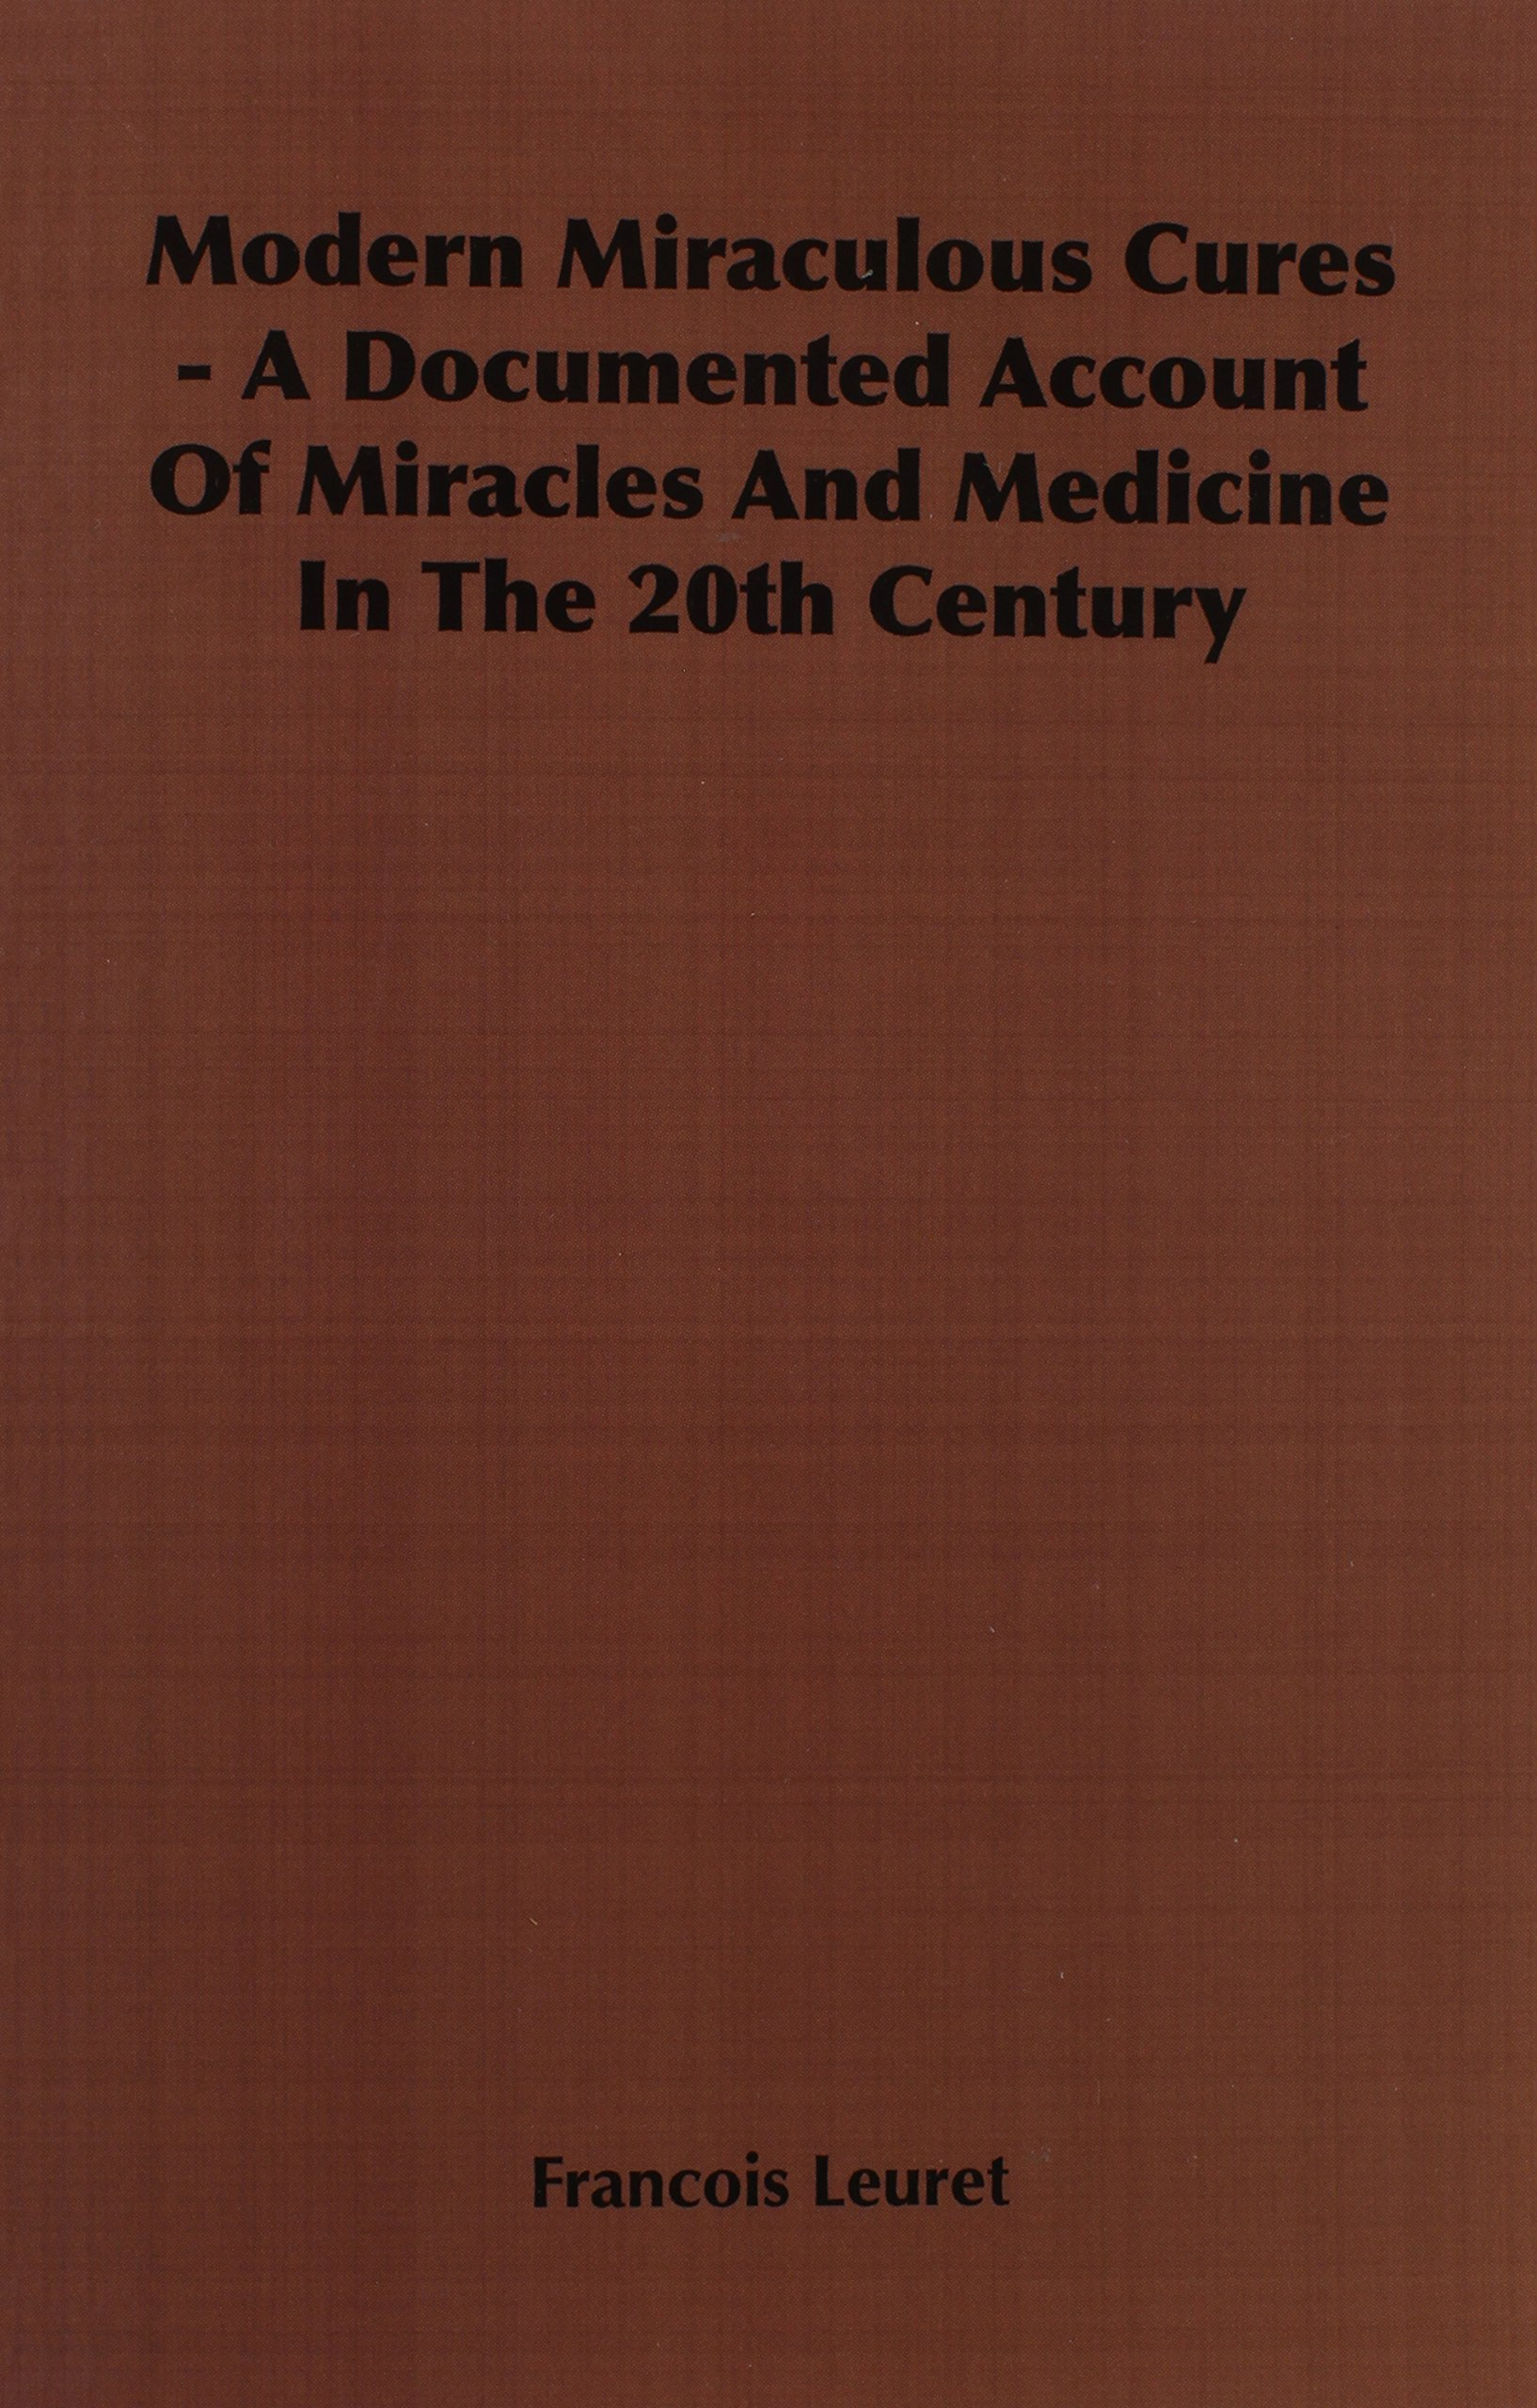 Modern Miraculous Cures - A Documented Account of Miracles and Medicine in the 20th Century PDF